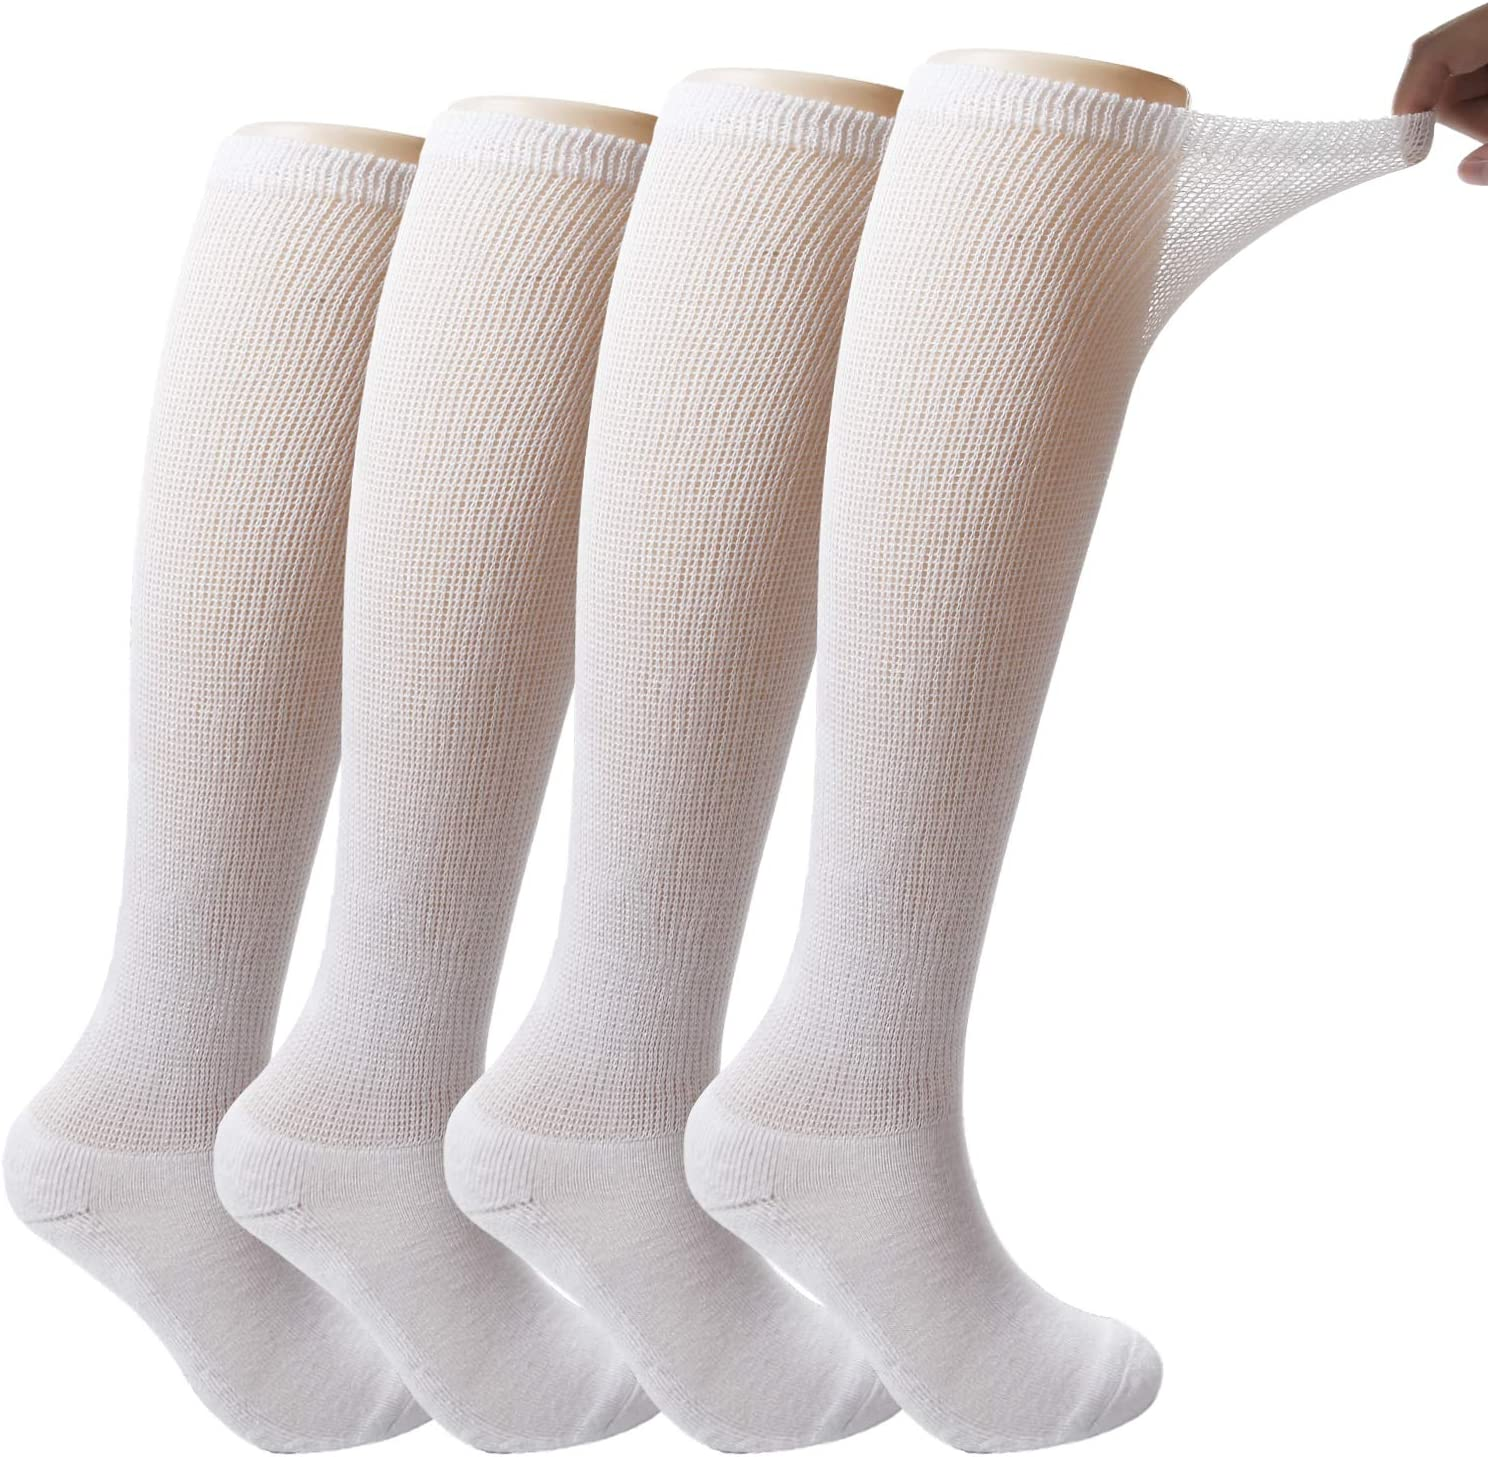 +MD 4 Pack Men's Extra Wide Non-Binding Diabetic and Circulatory Bamboo Over The Knee Socks with Cushioned Sole 4White10-13